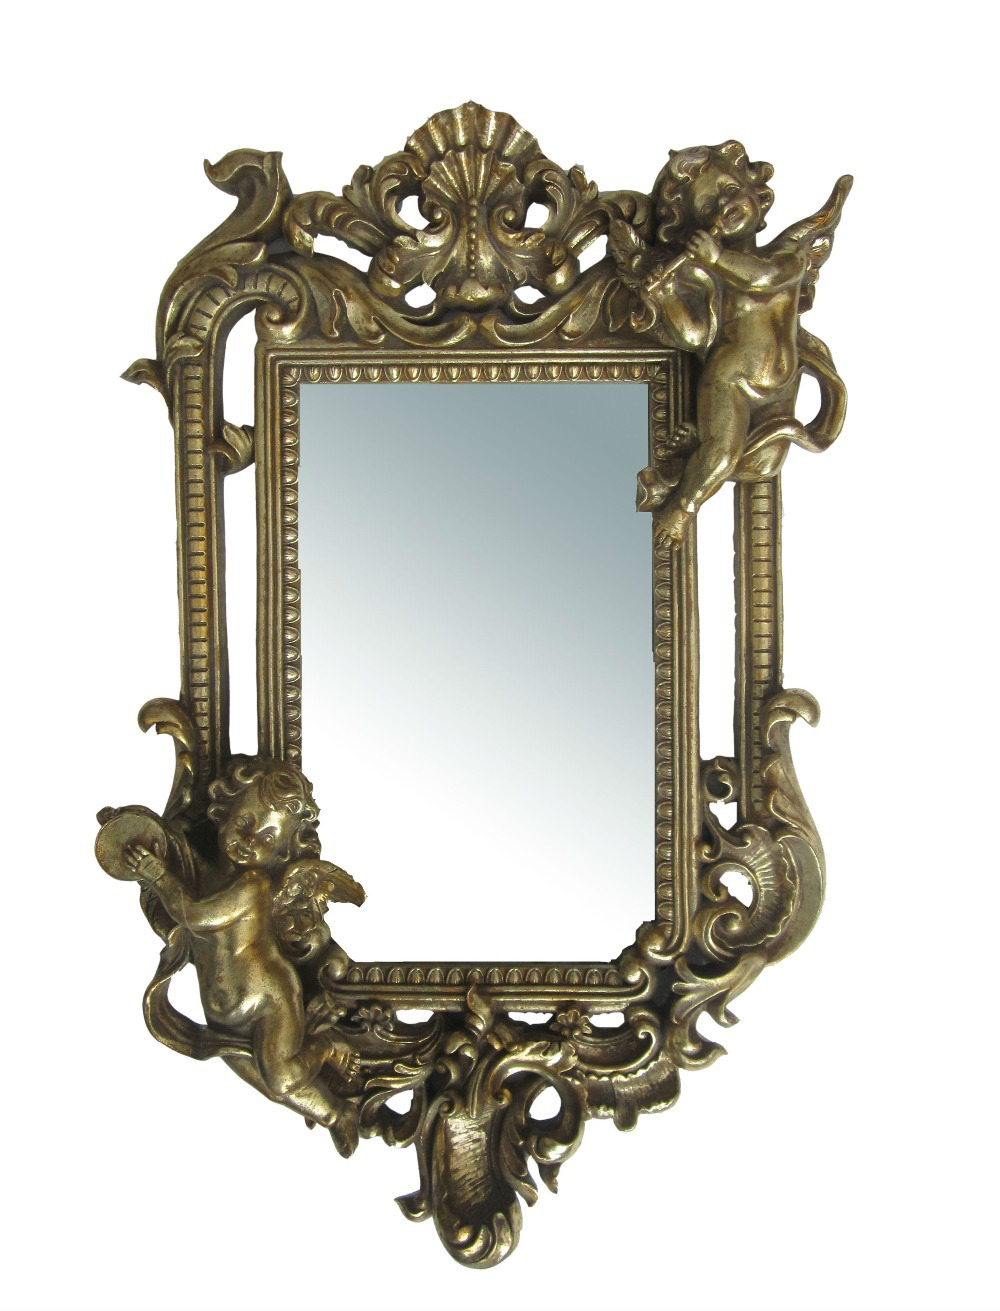 decorative mirrors, decorative mirrors suppliers and manufacturers